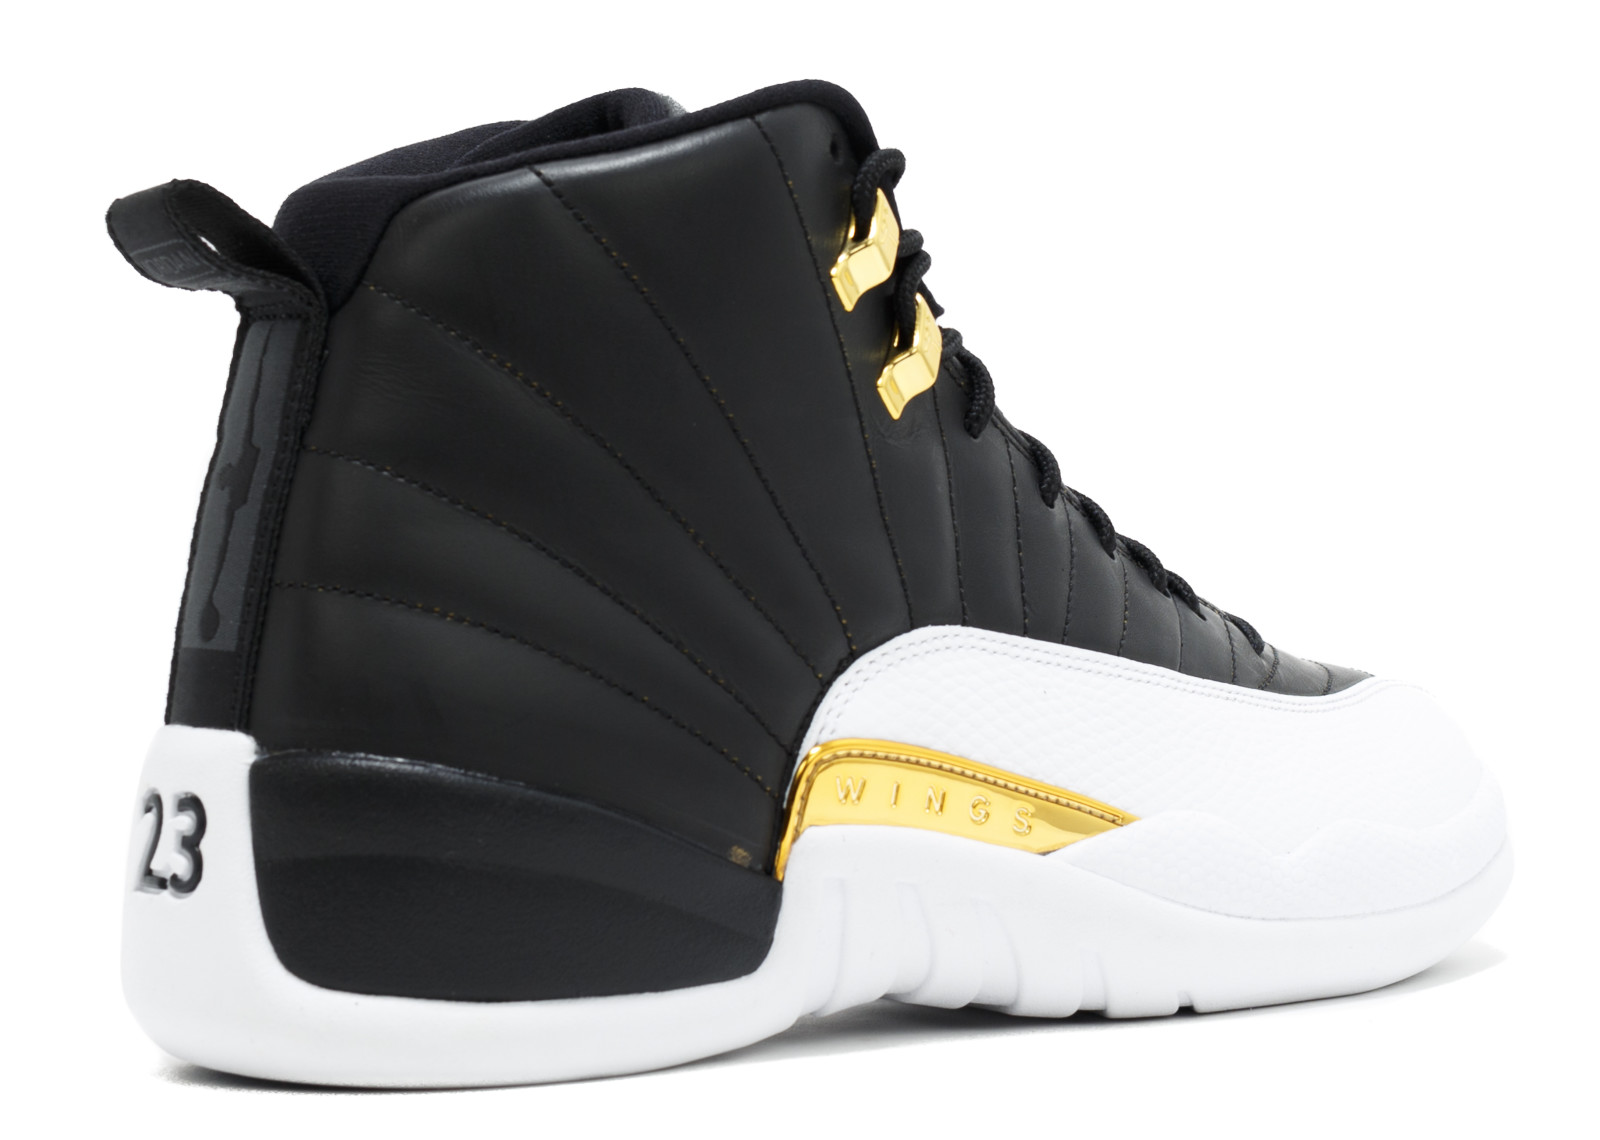 reputable site 924f7 09680 Air Jordan 12 Wings [aj12-20] - $99.22 : Kicks On Fire Shop ...